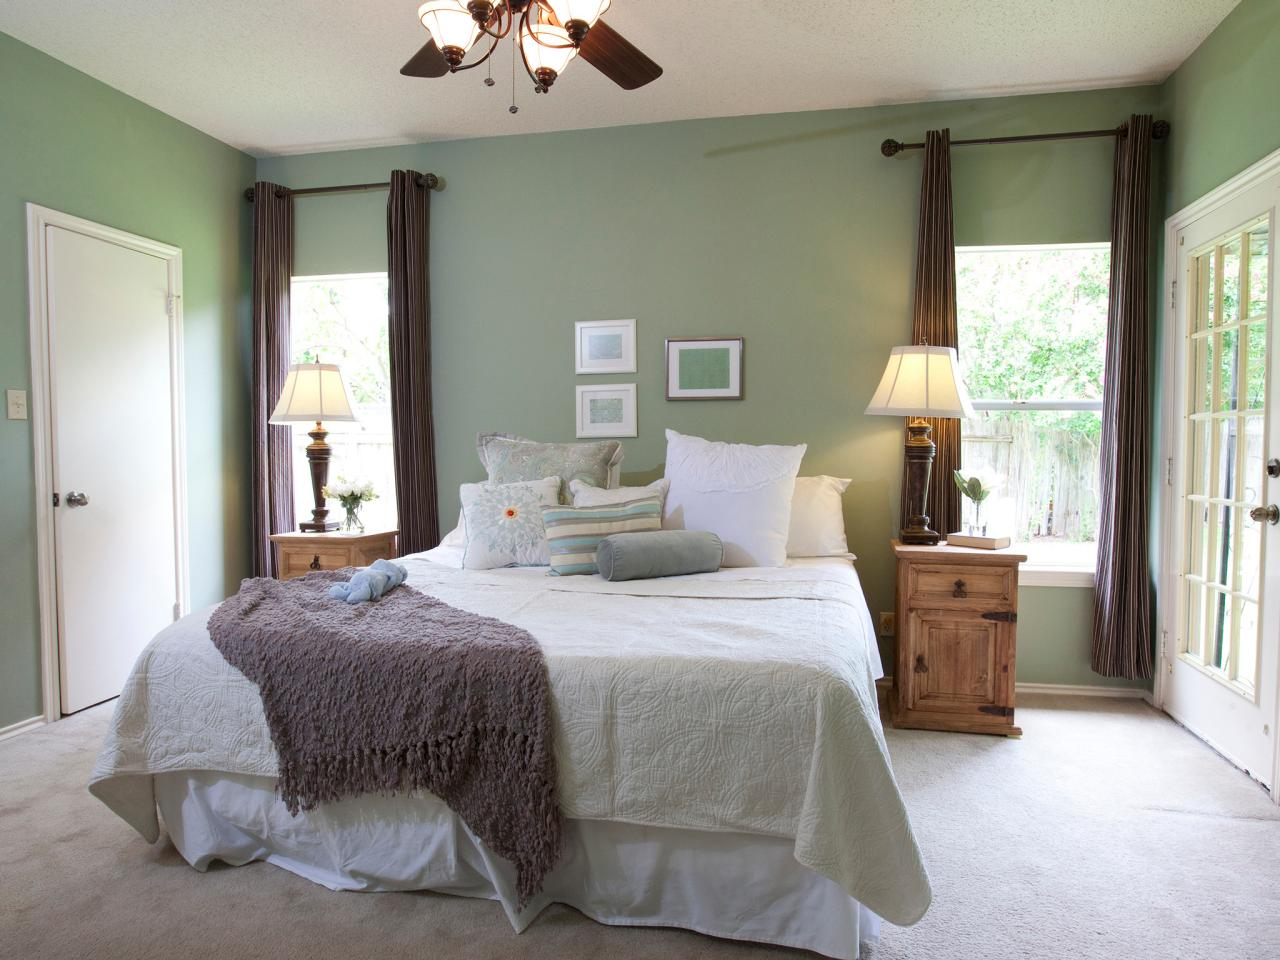 Photos hgtv Brown and green master bedroom ideas